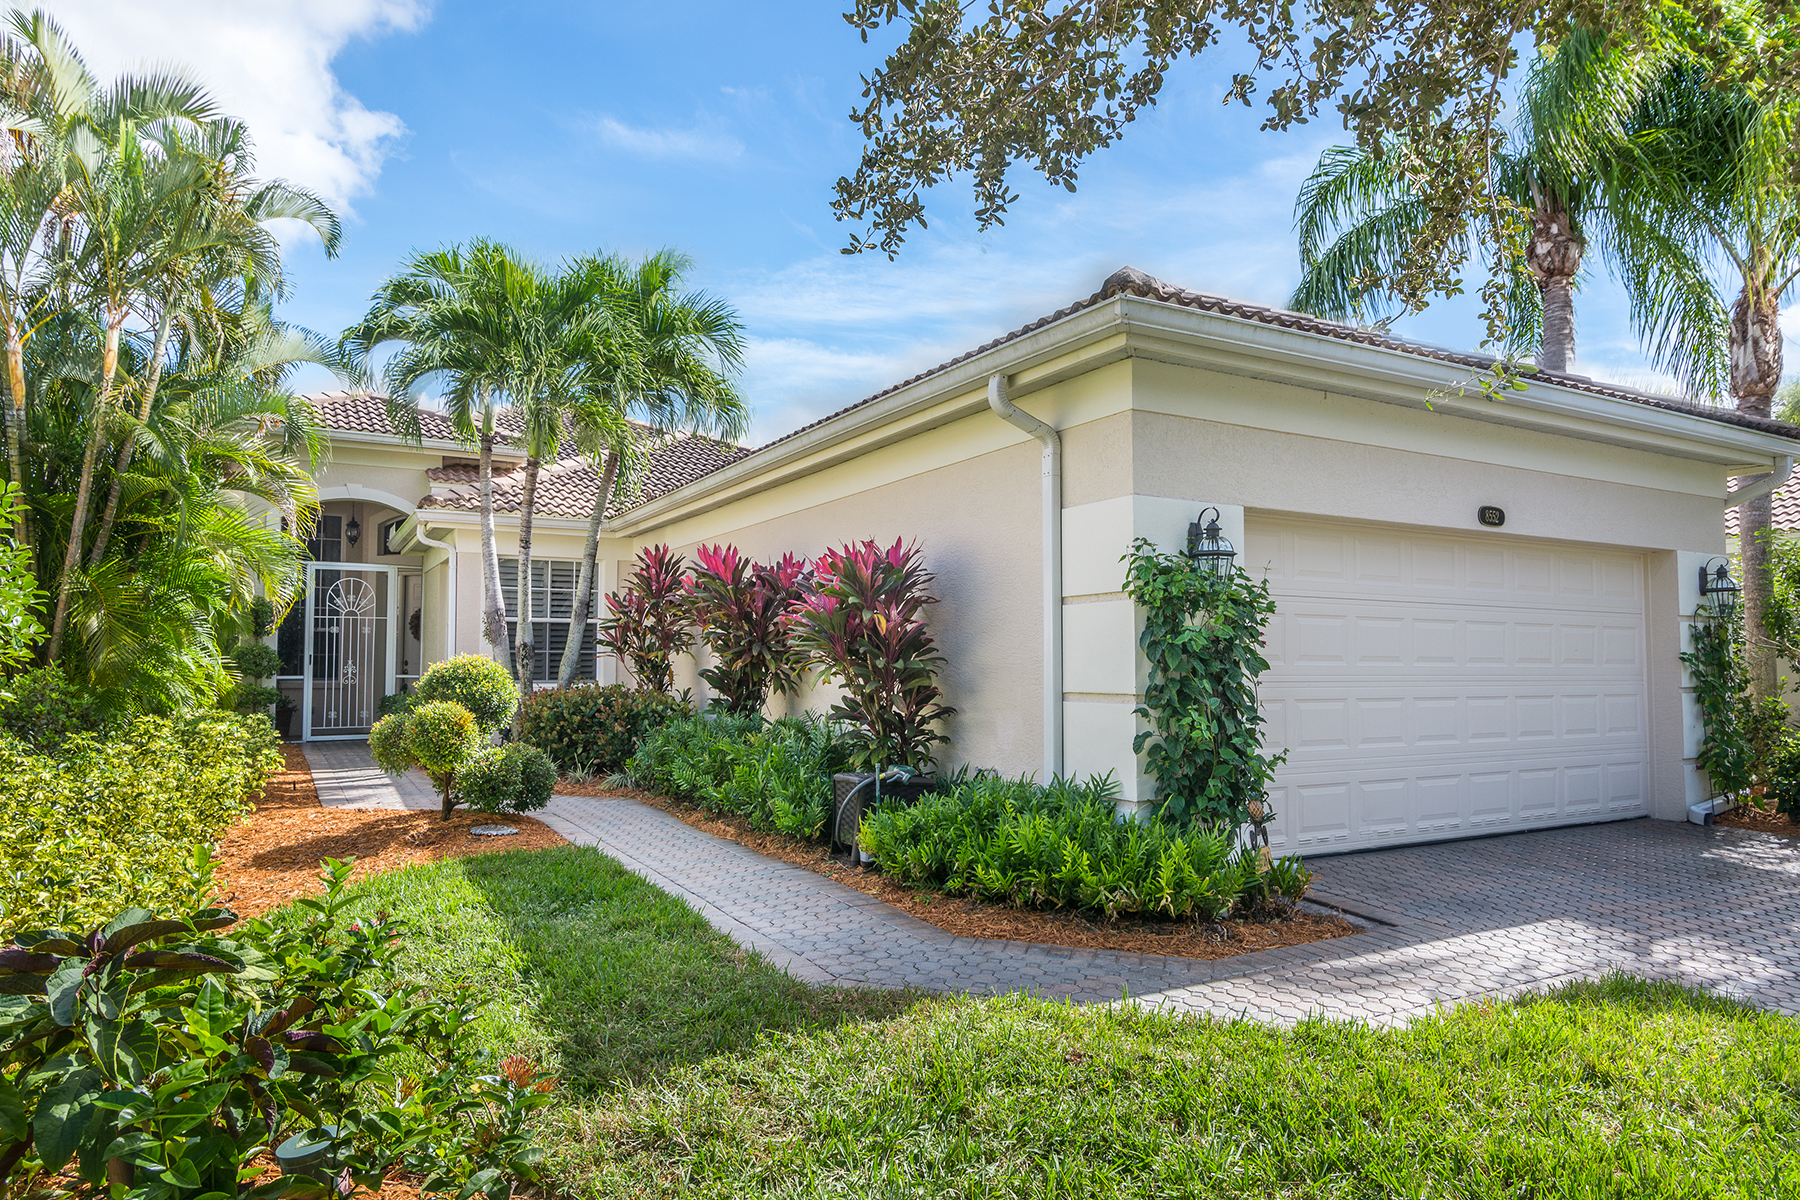 Single Family Home for Sale at FIDDLER'S CREEK - PEPPER TREE 8552 Pepper Tree Way Naples, Florida 34114 United States